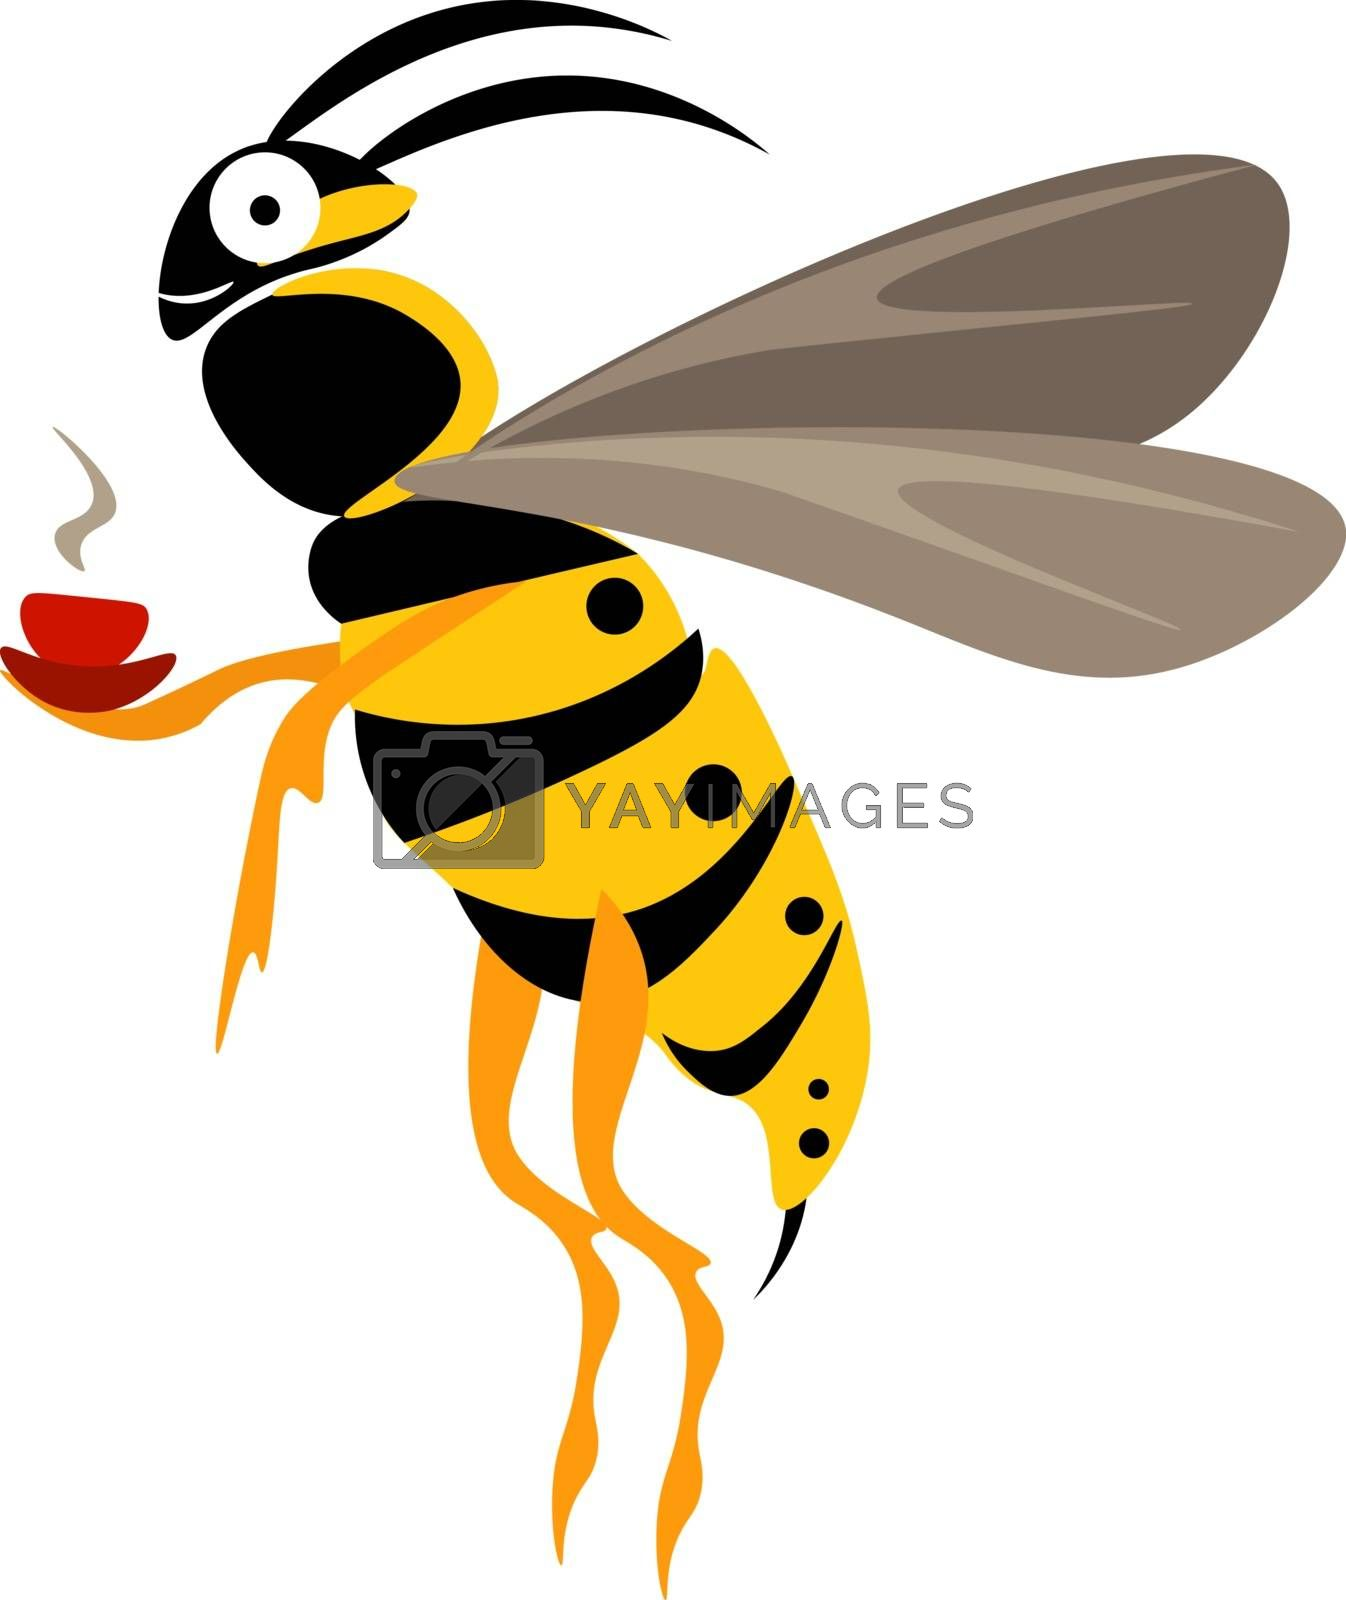 Royalty free image of Cute little wasp holding a steaming cup of coffee looks funny ve by Morphart